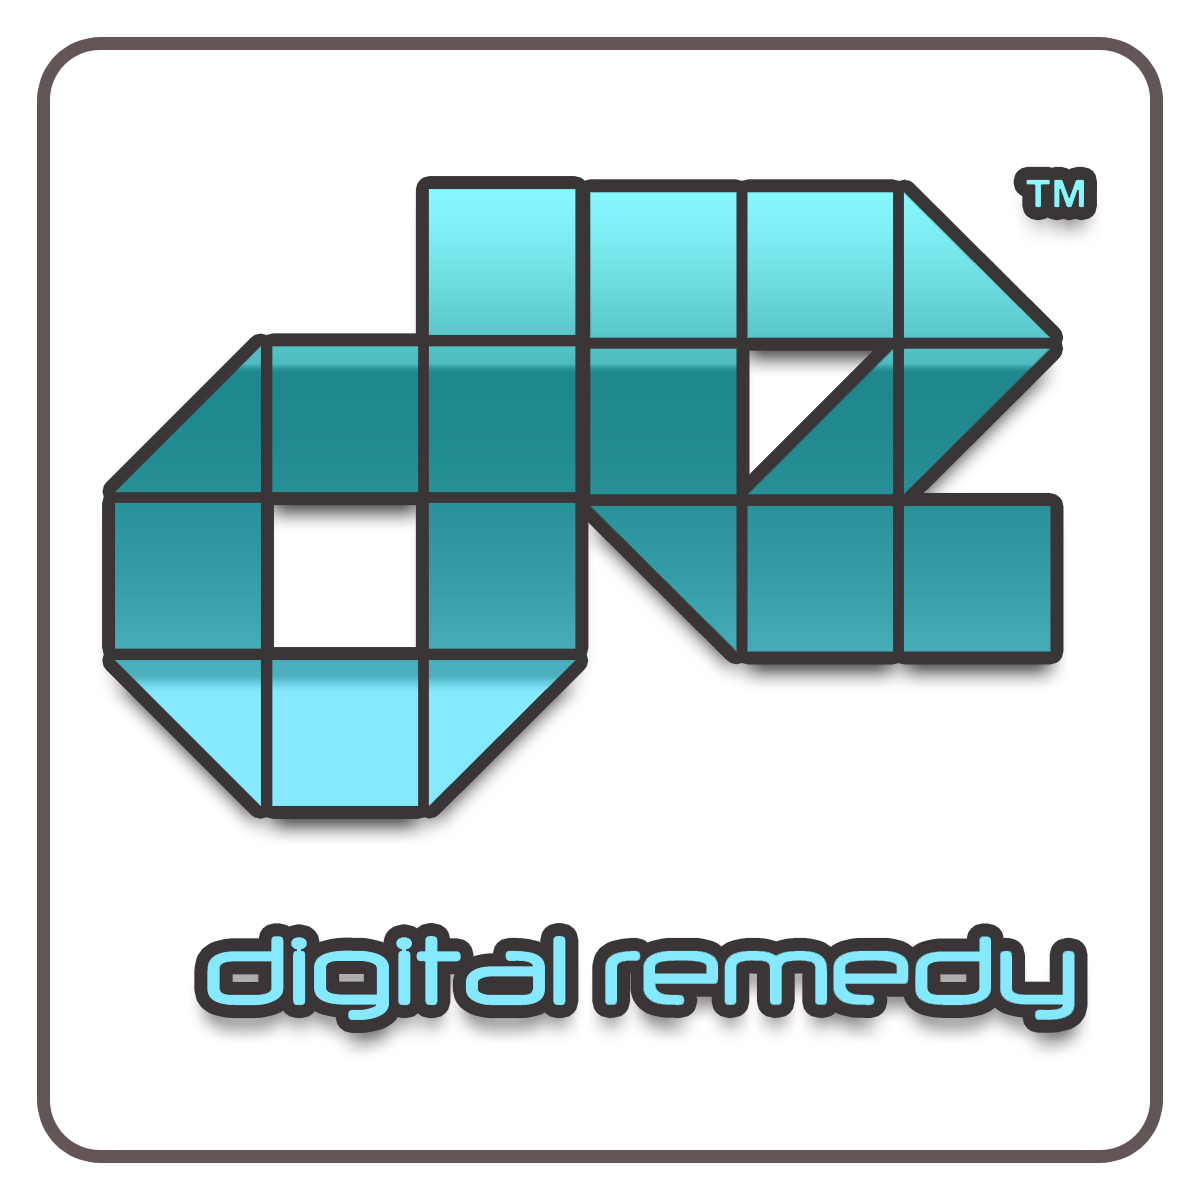 Digital Remedy Recordings